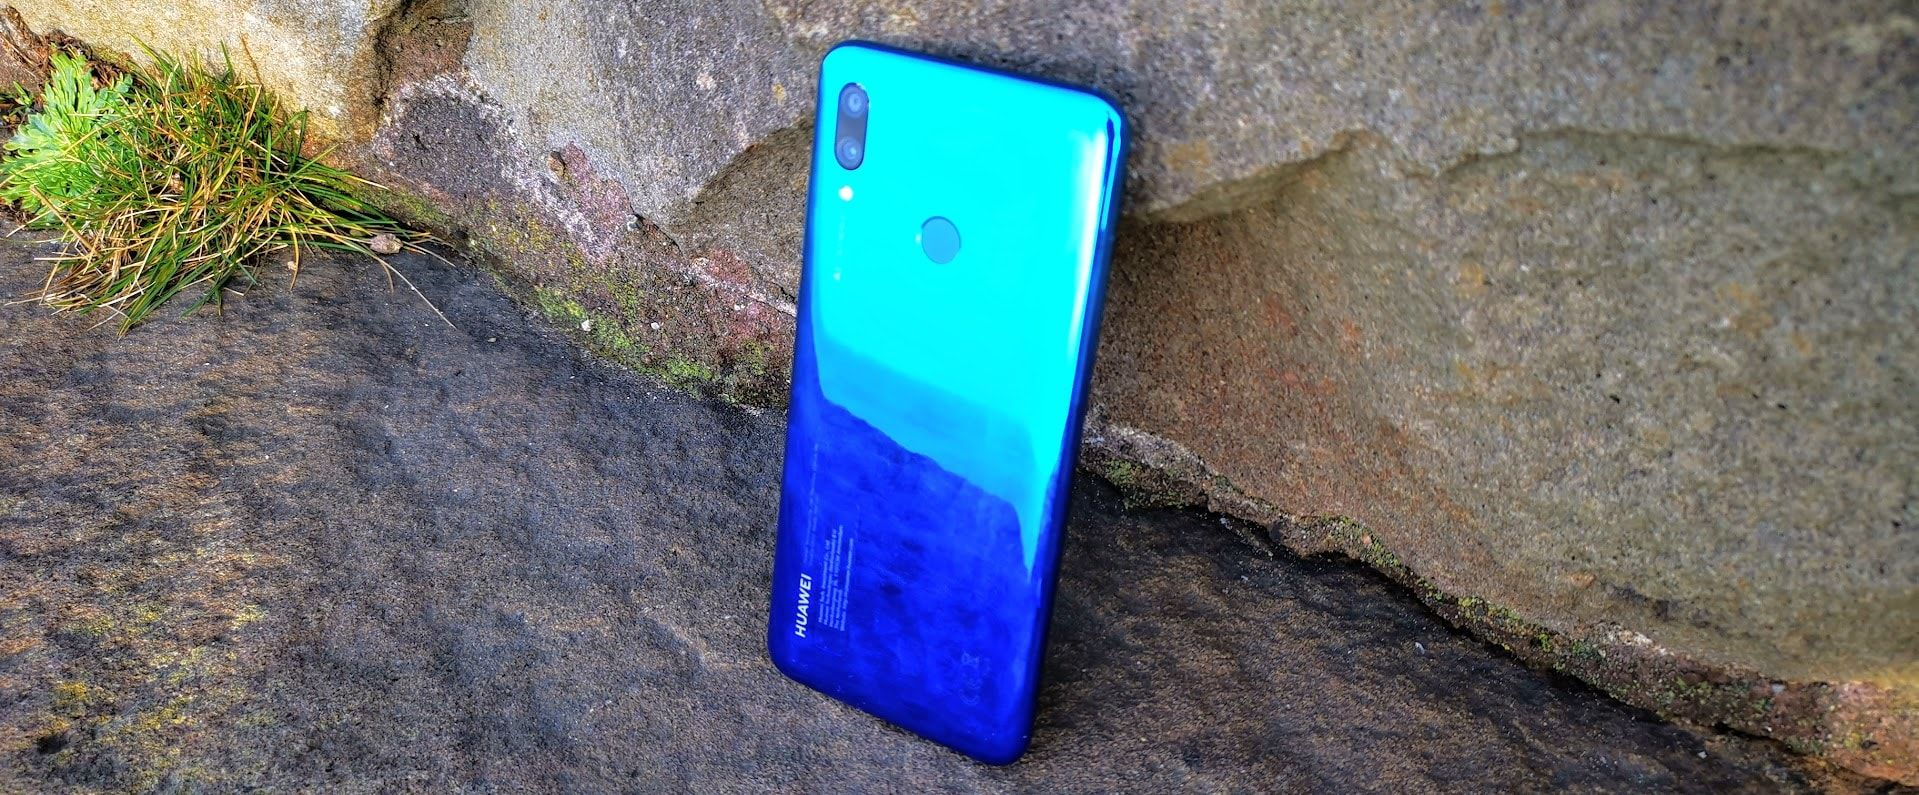 Huawei p smart 2019 review premium looks and features